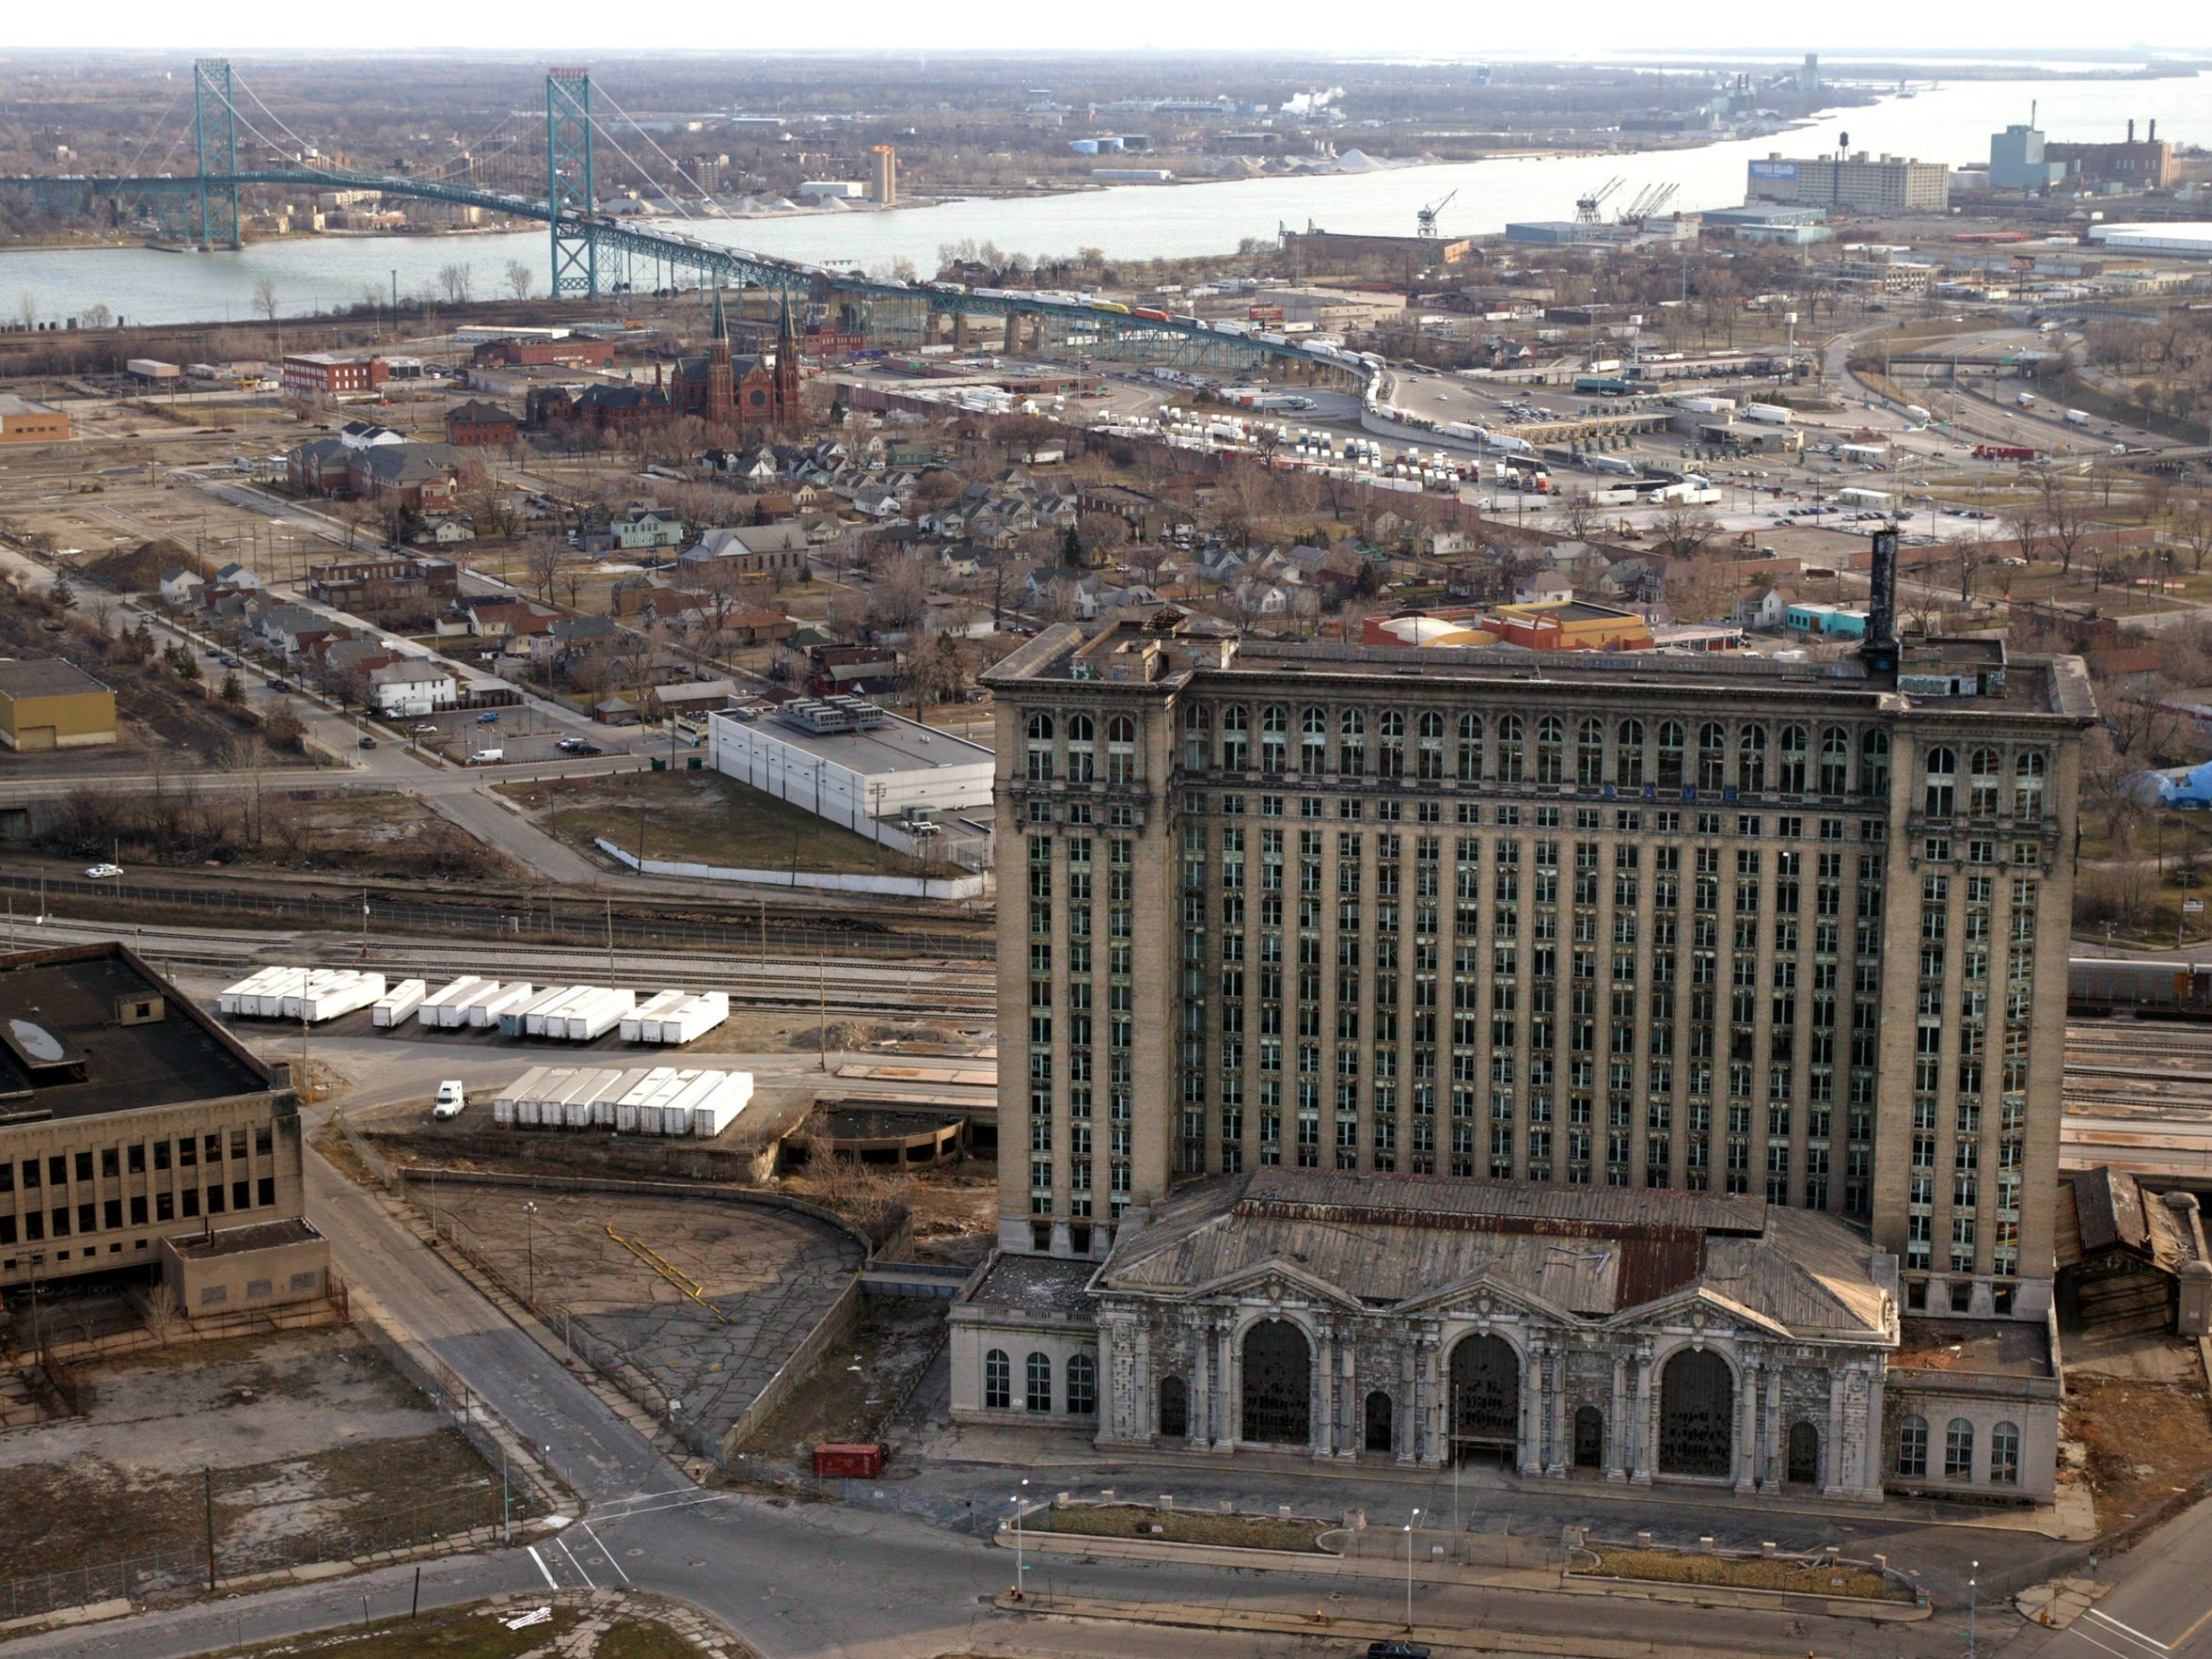 A 2004 photograph shows an aerial view of the old Michigan Central station. Reports have it that Ford Motor Company is planning to move its smart vehicle development center to the building.